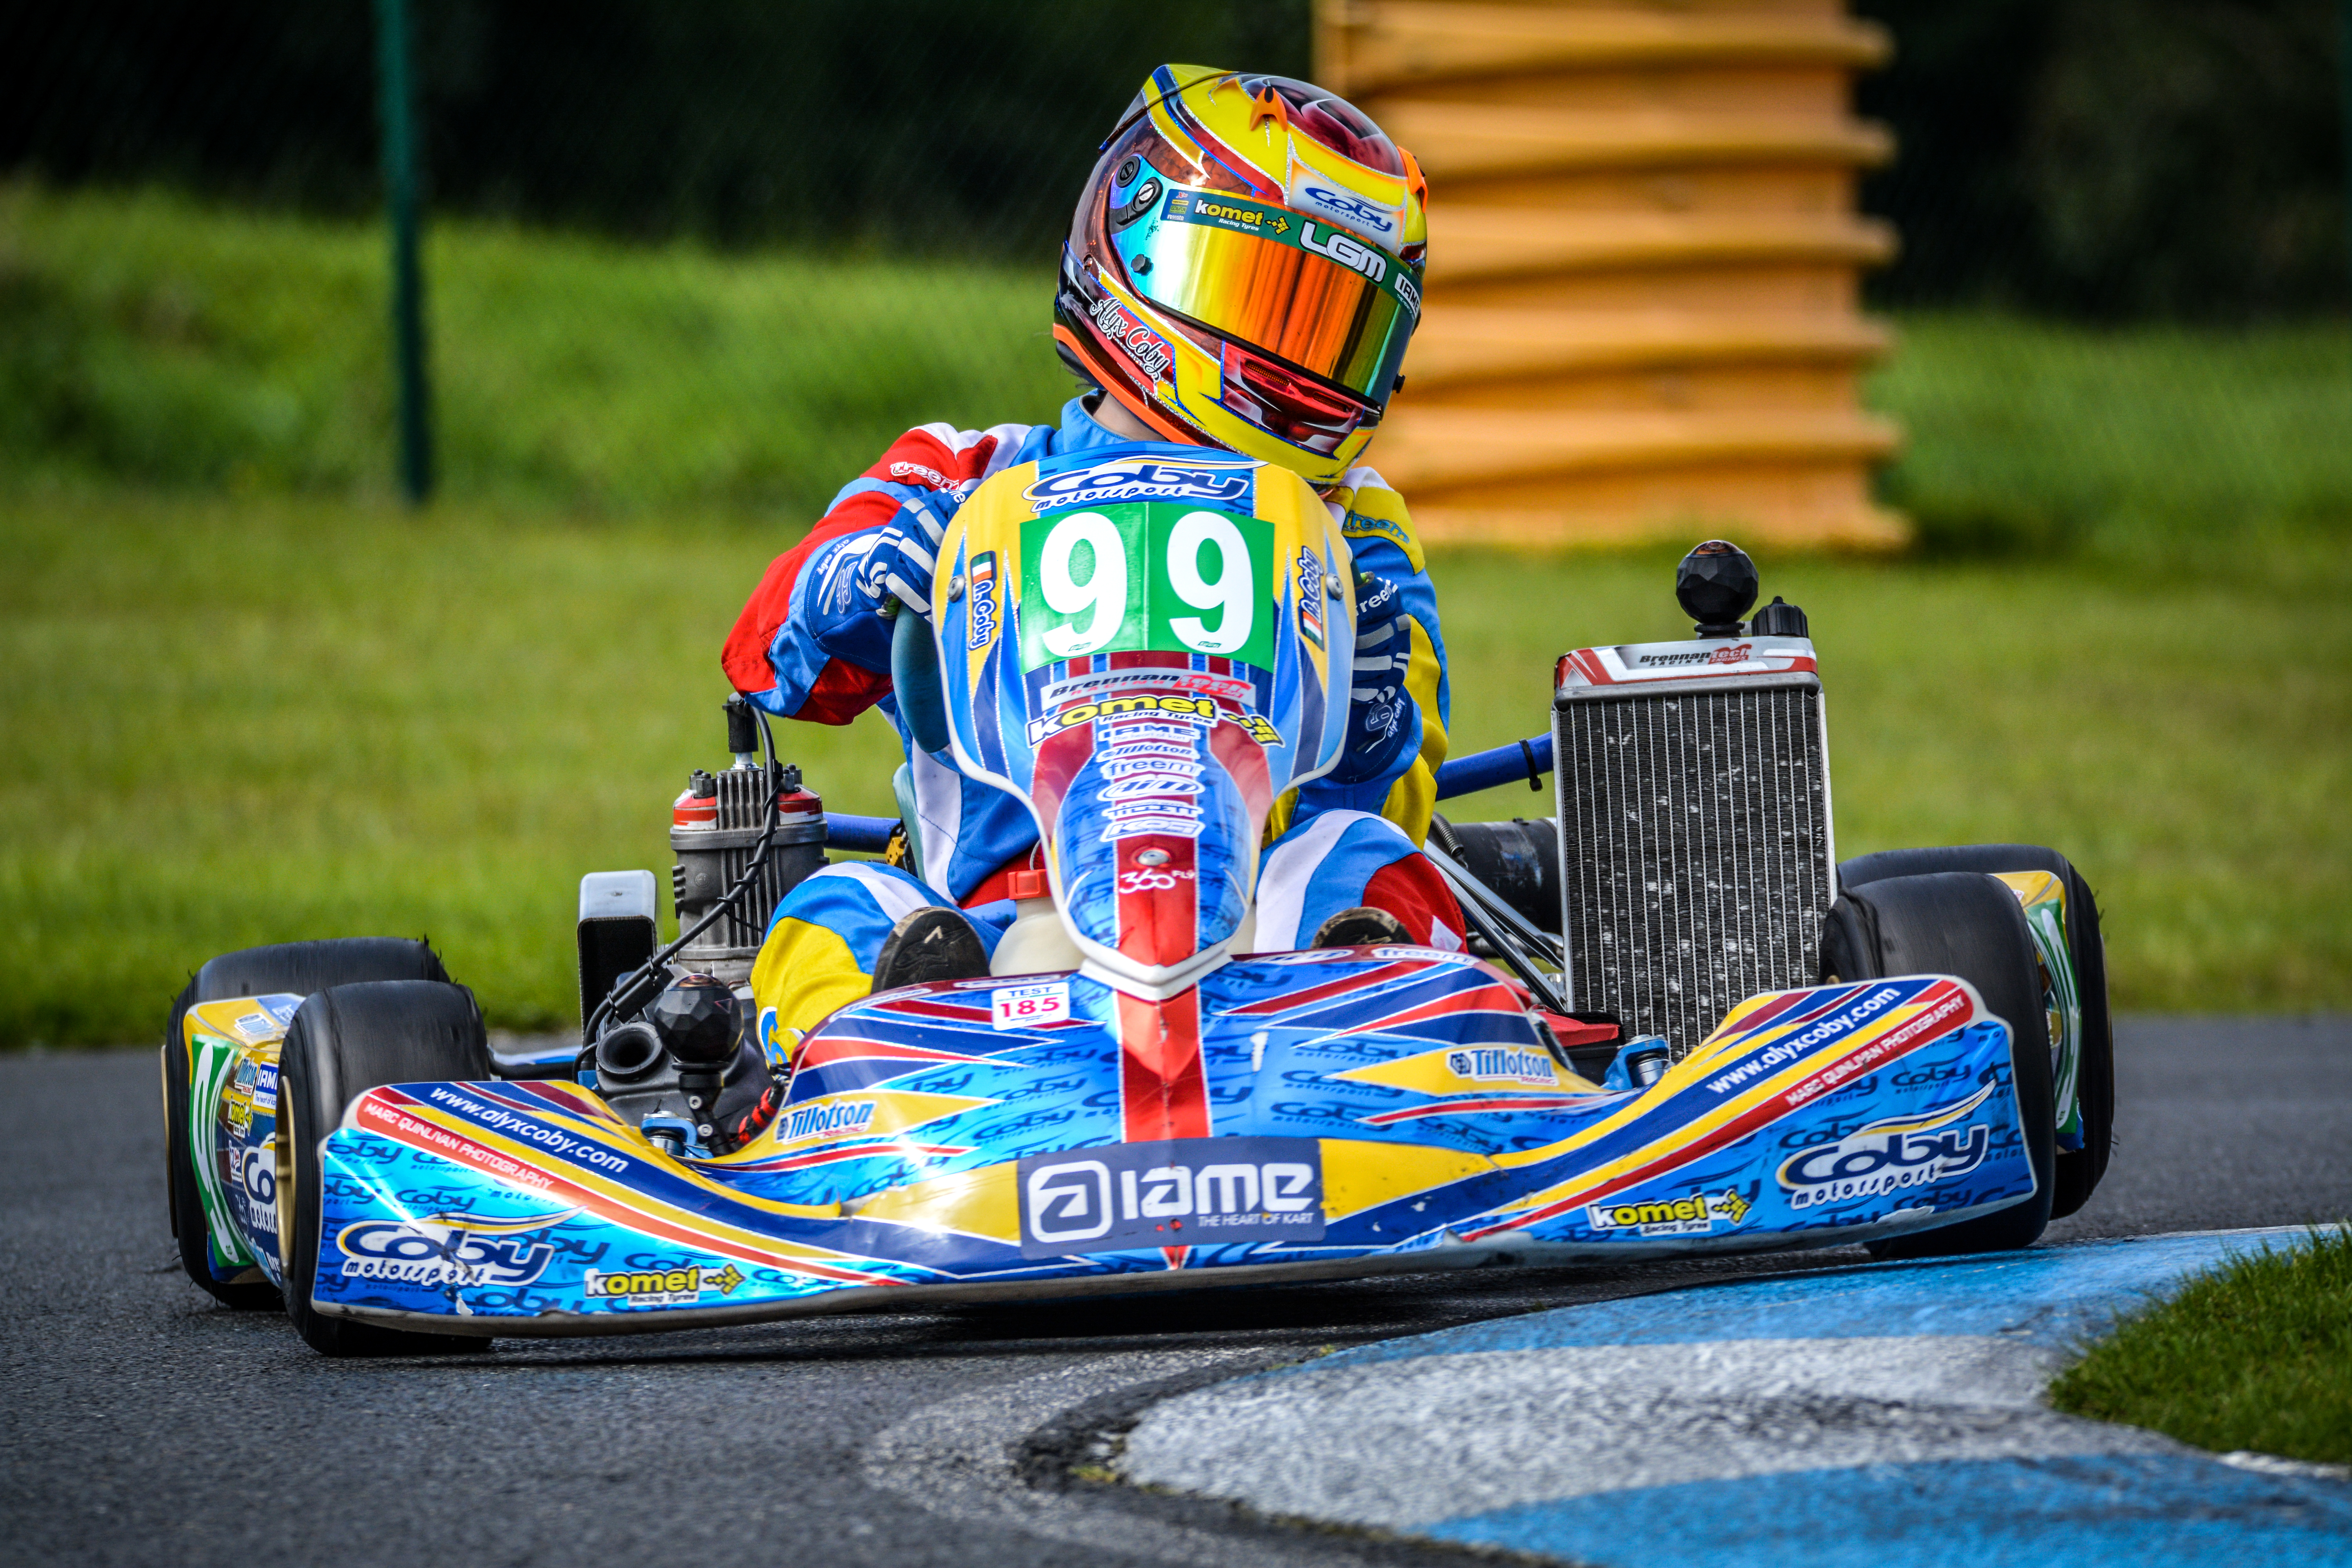 Second place and fastest lap for Alyx Coby at Whiteriver Park